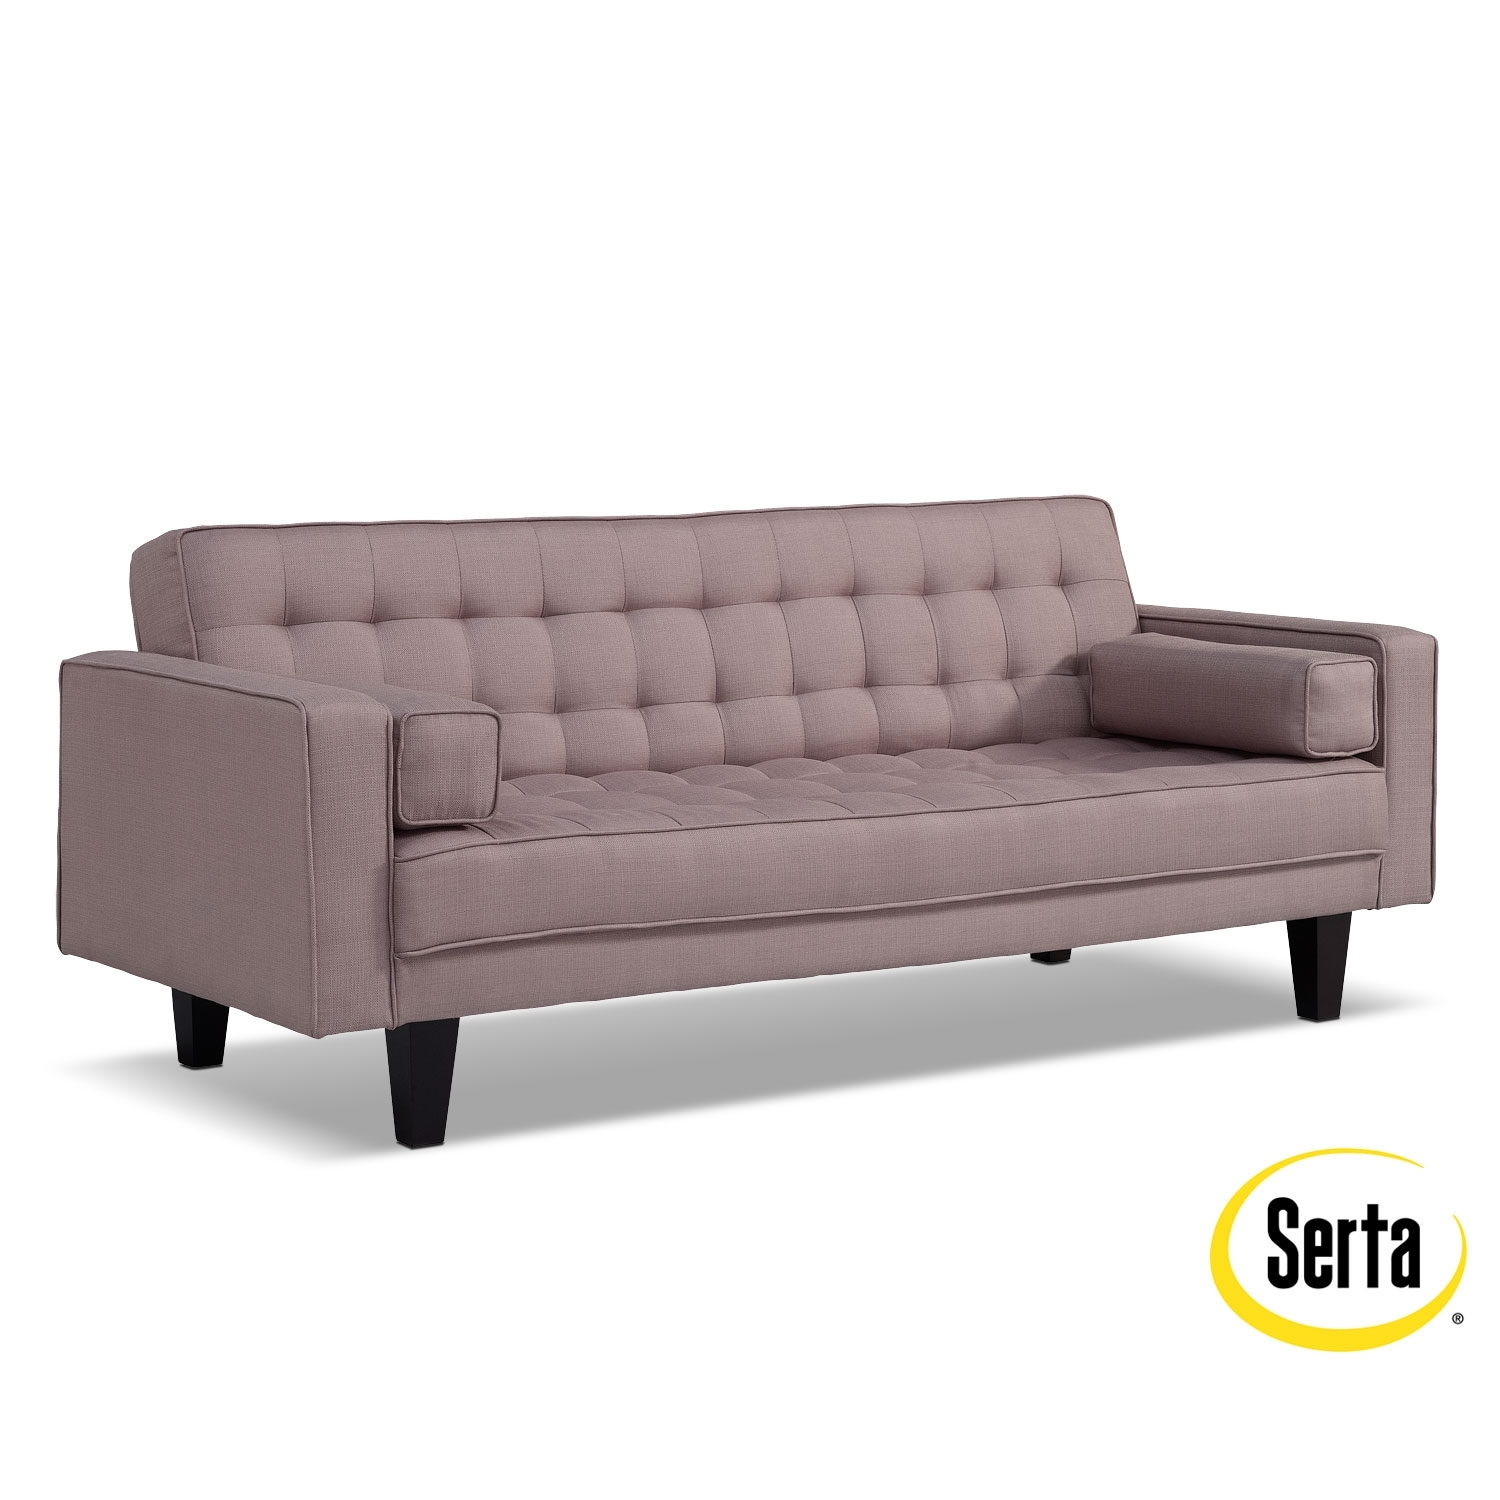 Living Room Furniture - Bianca Futon Sofa Bed